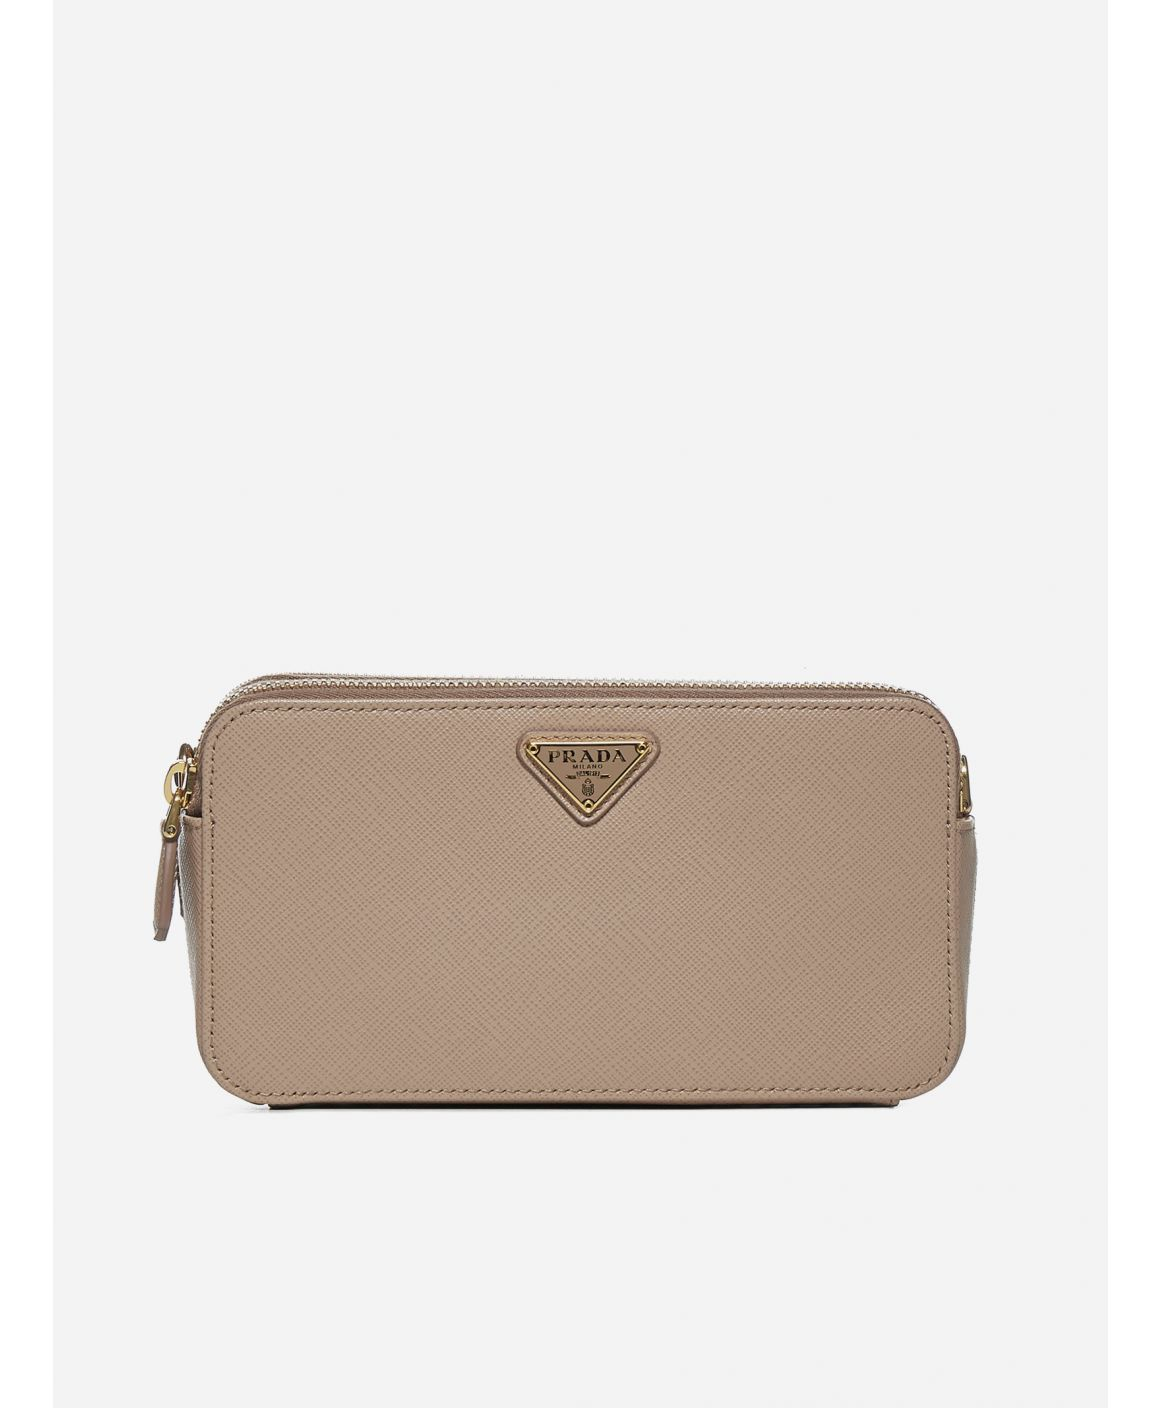 Saffiano leather mini shoulder bag